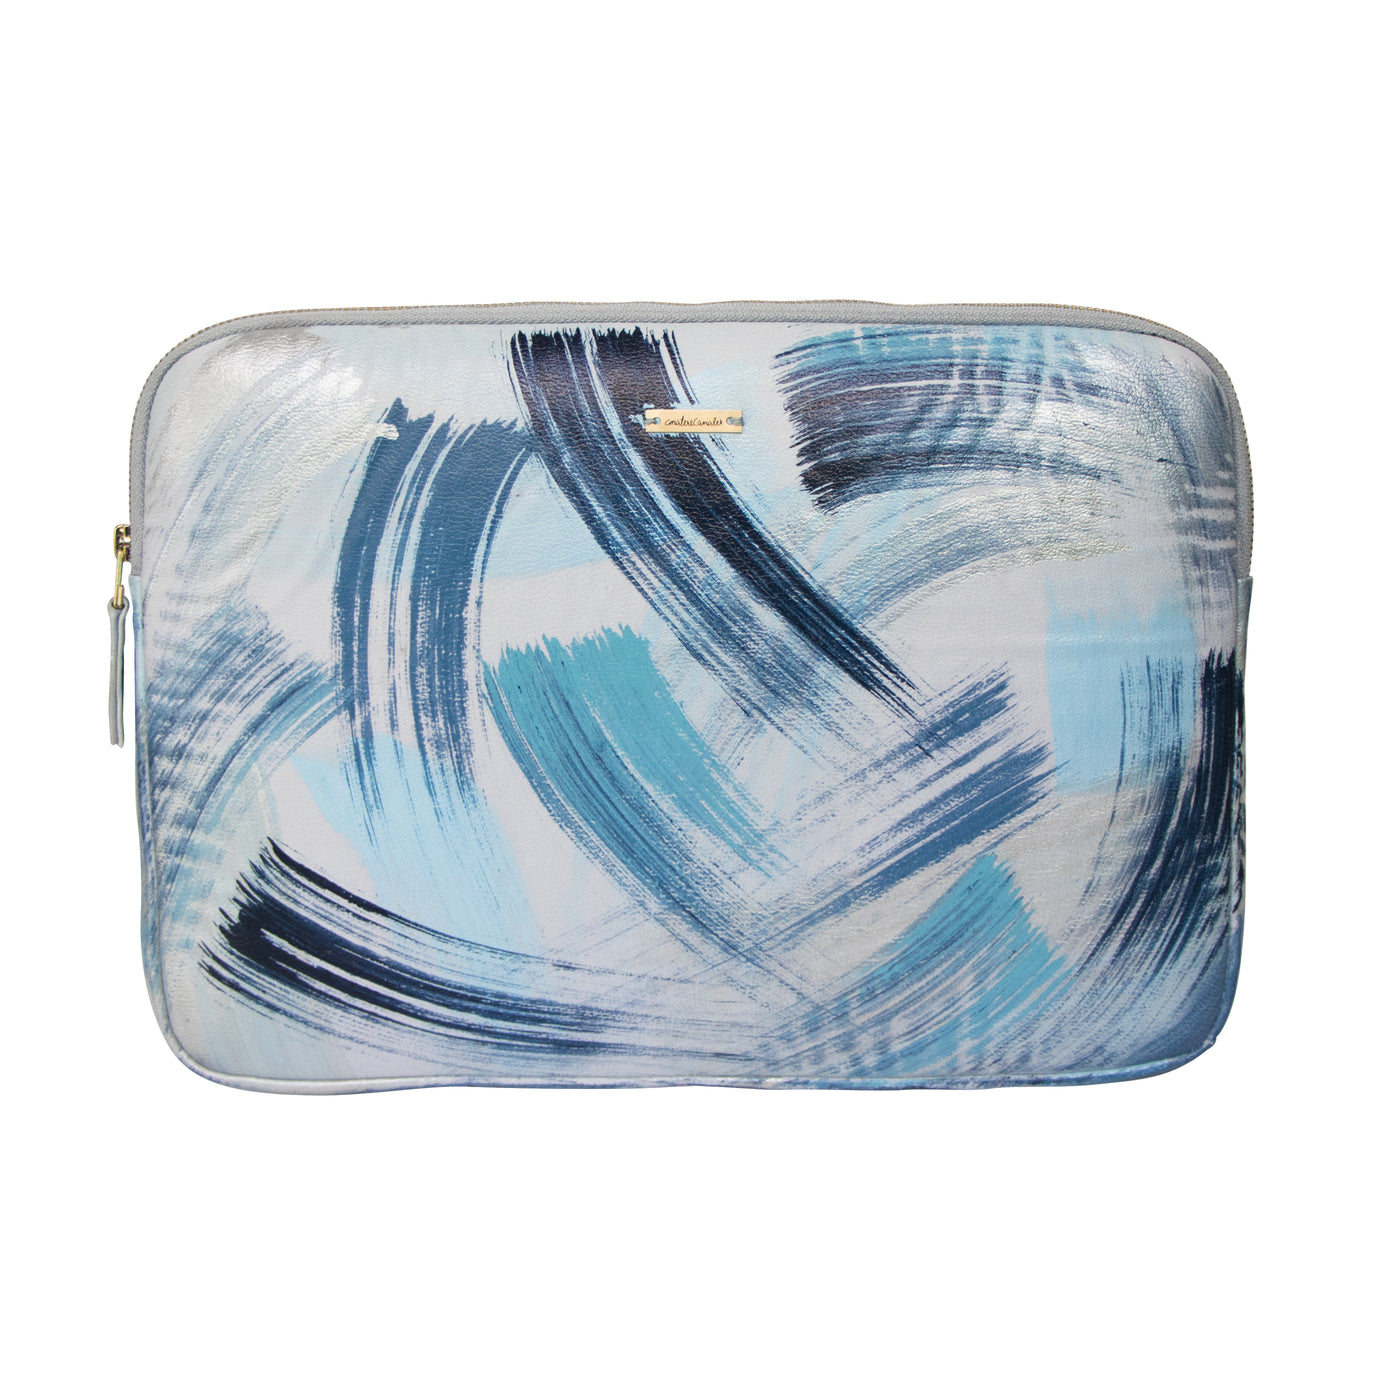 Glacial Ice Laptop Bag - Ana Tere Canales